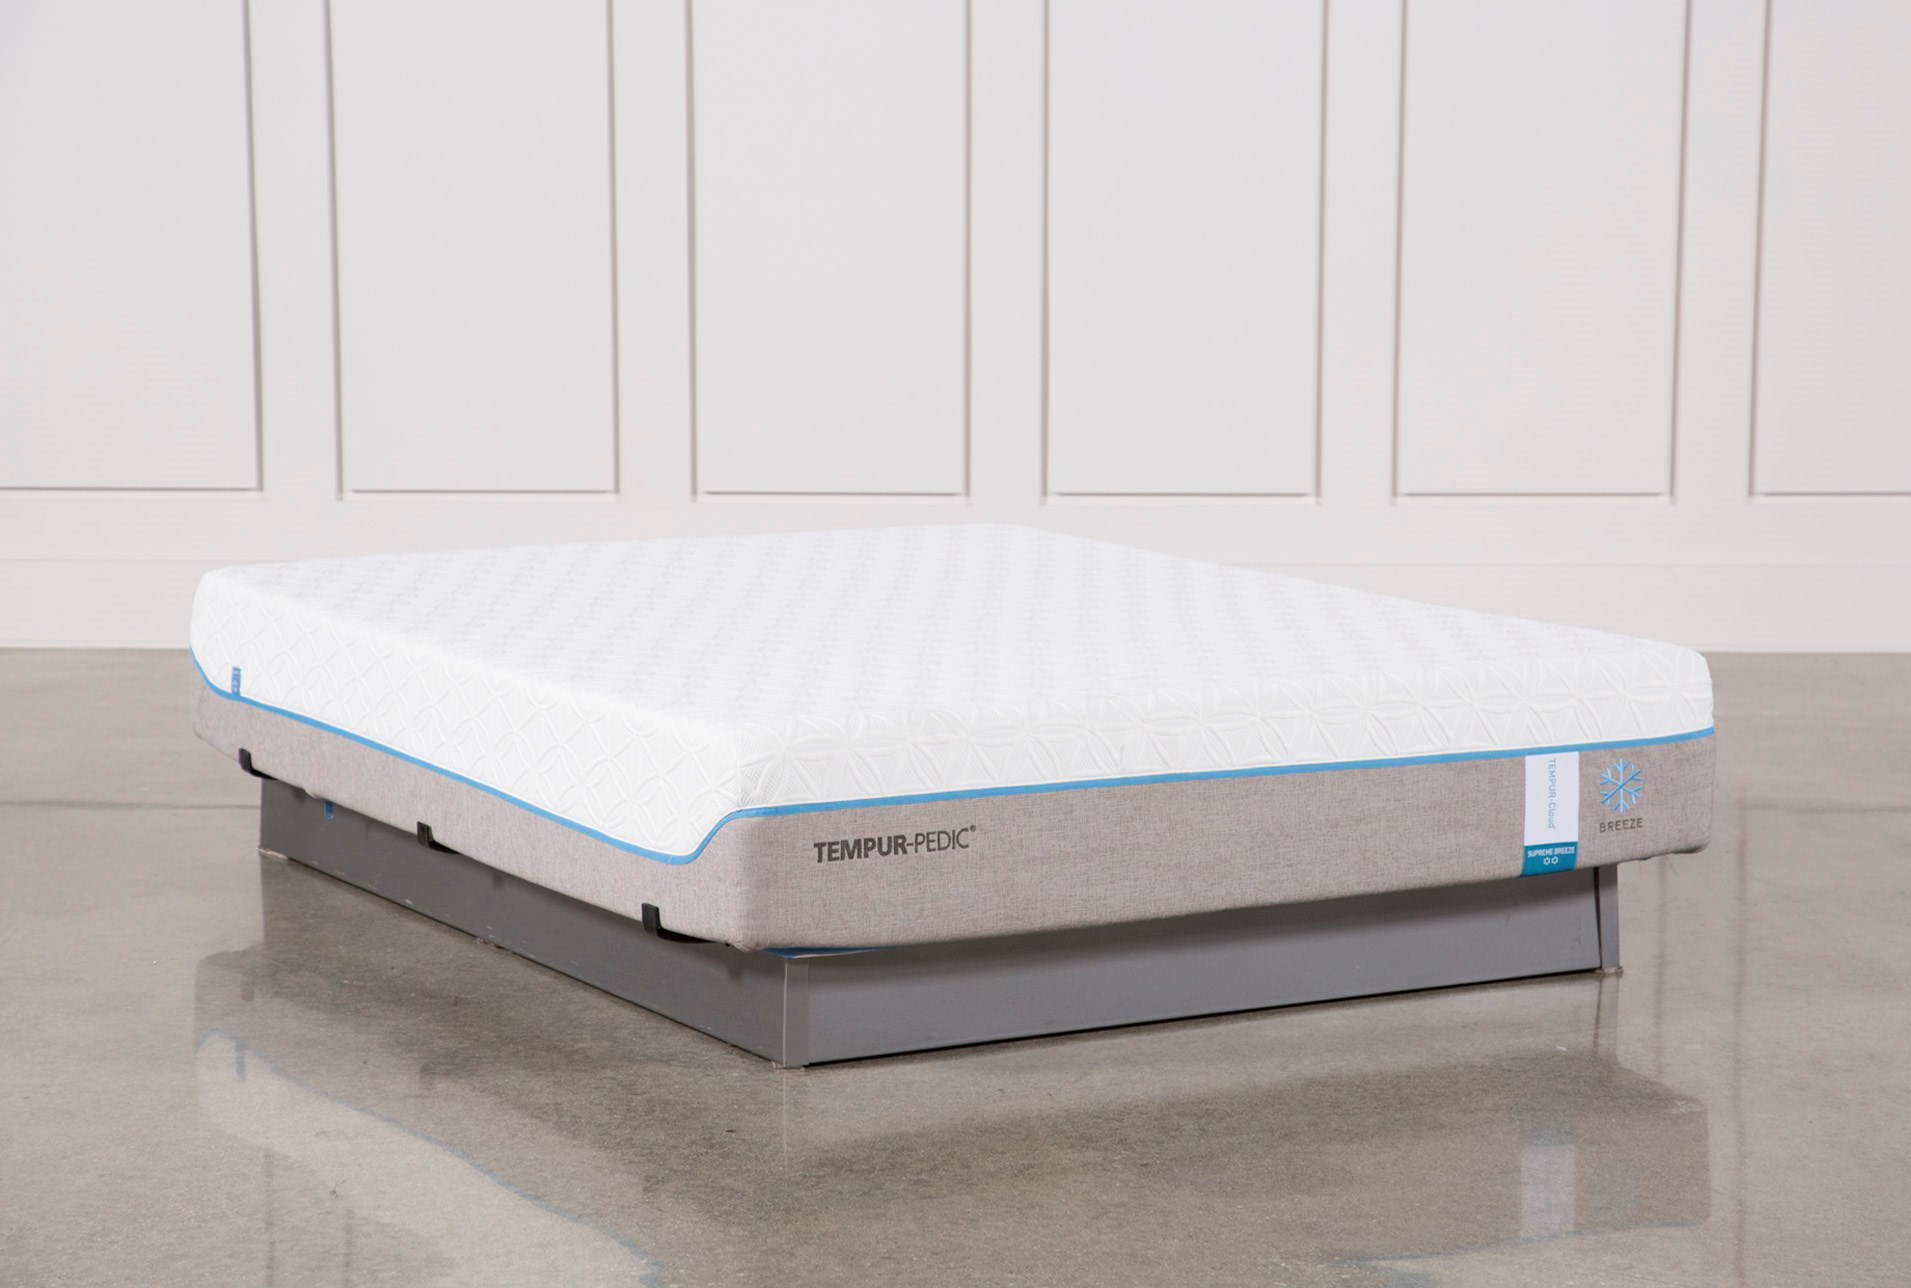 serenity ebay pedic b memory s topper mattresses mattress king by tempur foam bn